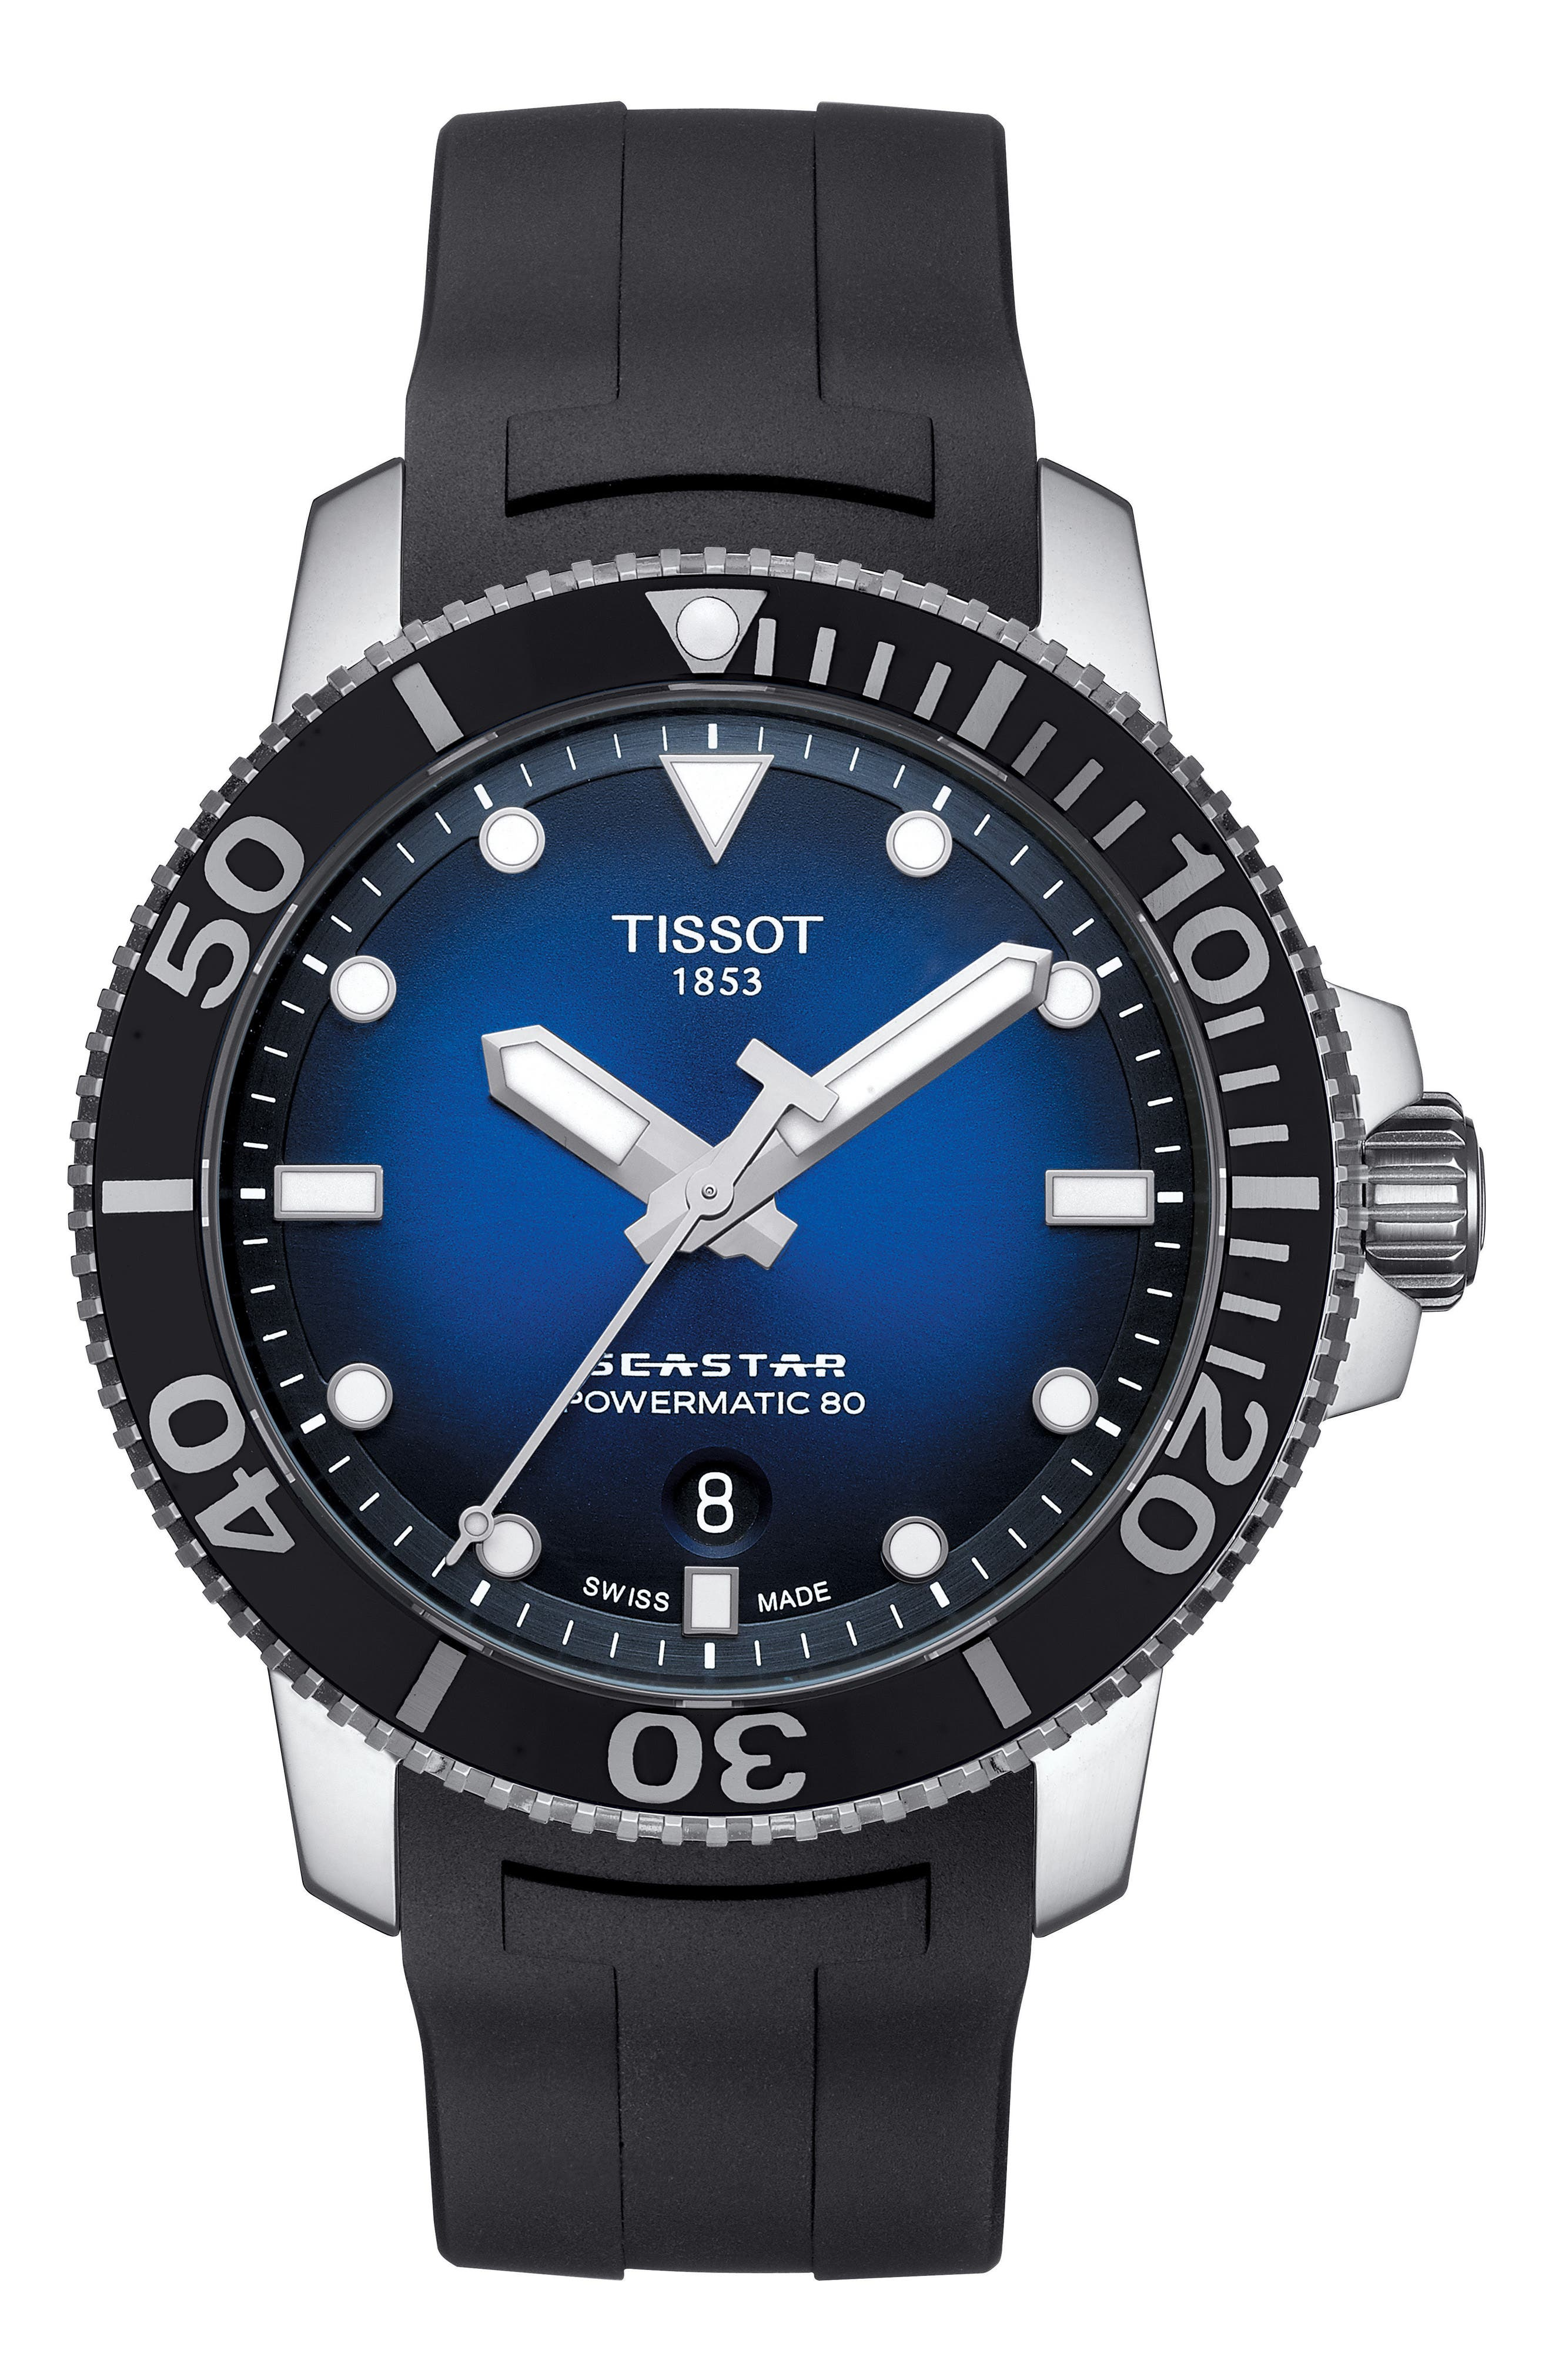 TISSOT T120.407.17.041.00 Seastar 1000 Stainless Steel And Rubber Watch in Blue